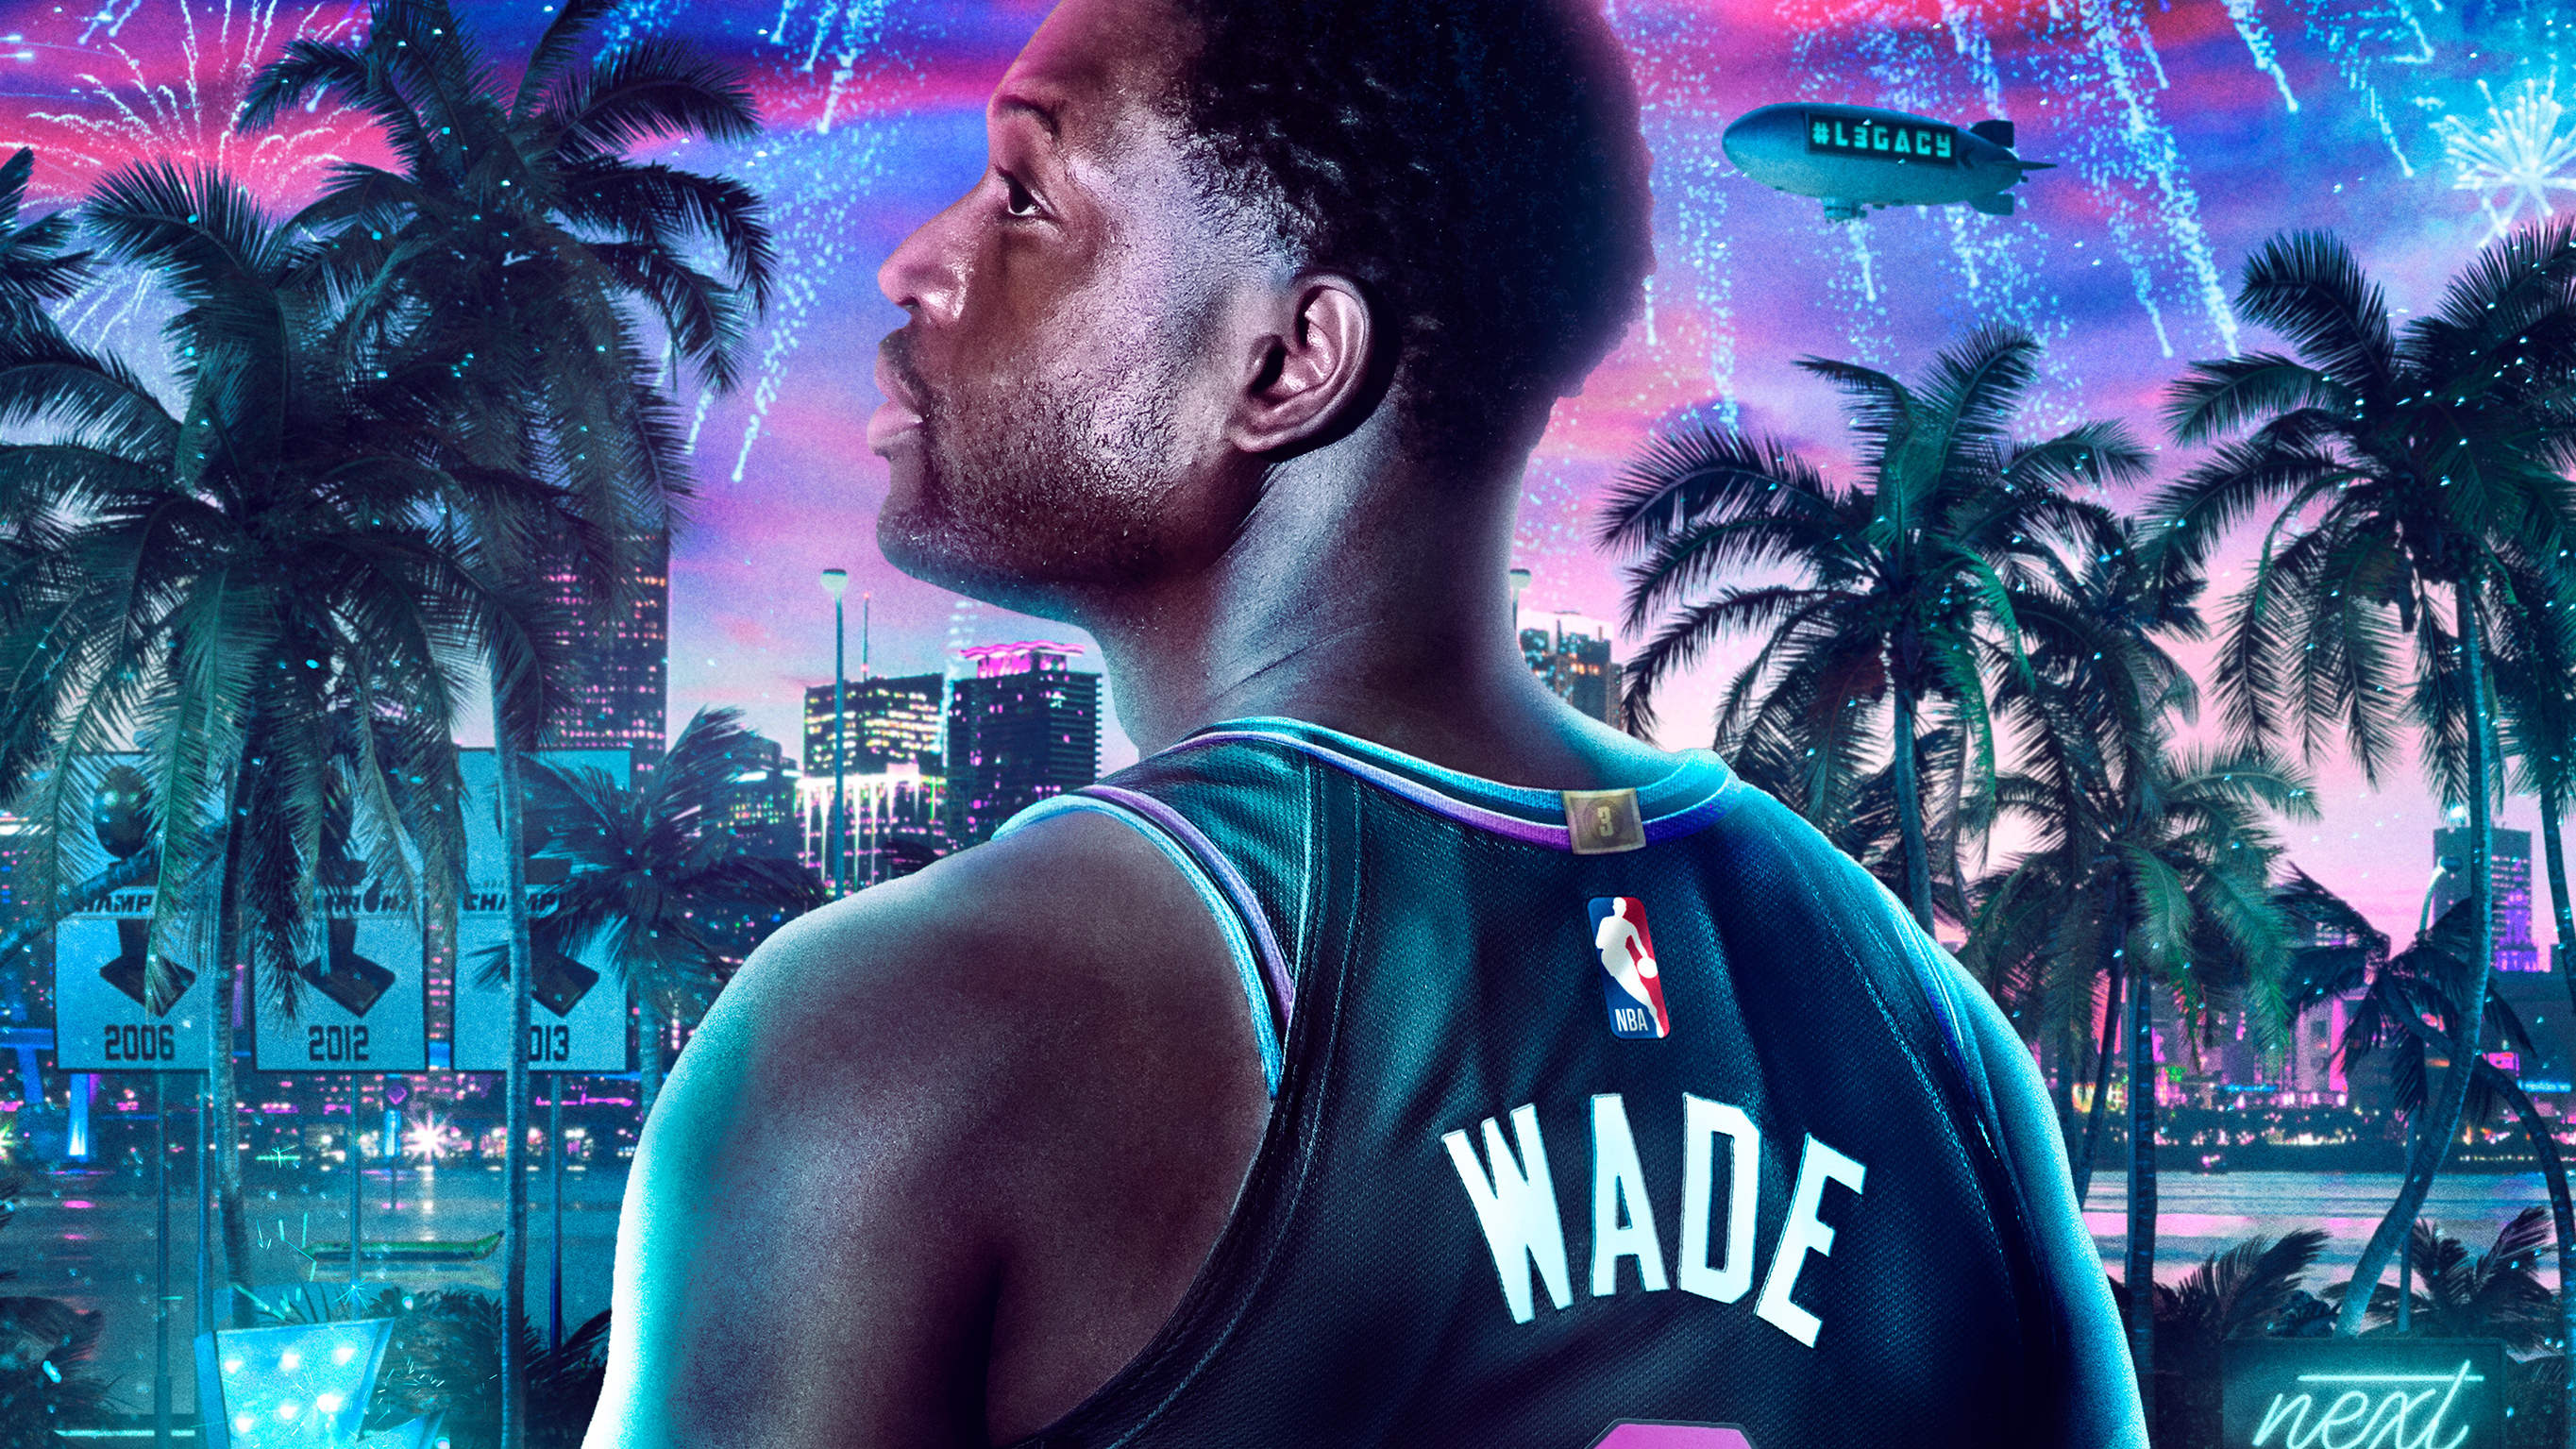 Nba 2k20 Game Hd Games 4k Wallpapers Images Backgrounds Photos And Pictures